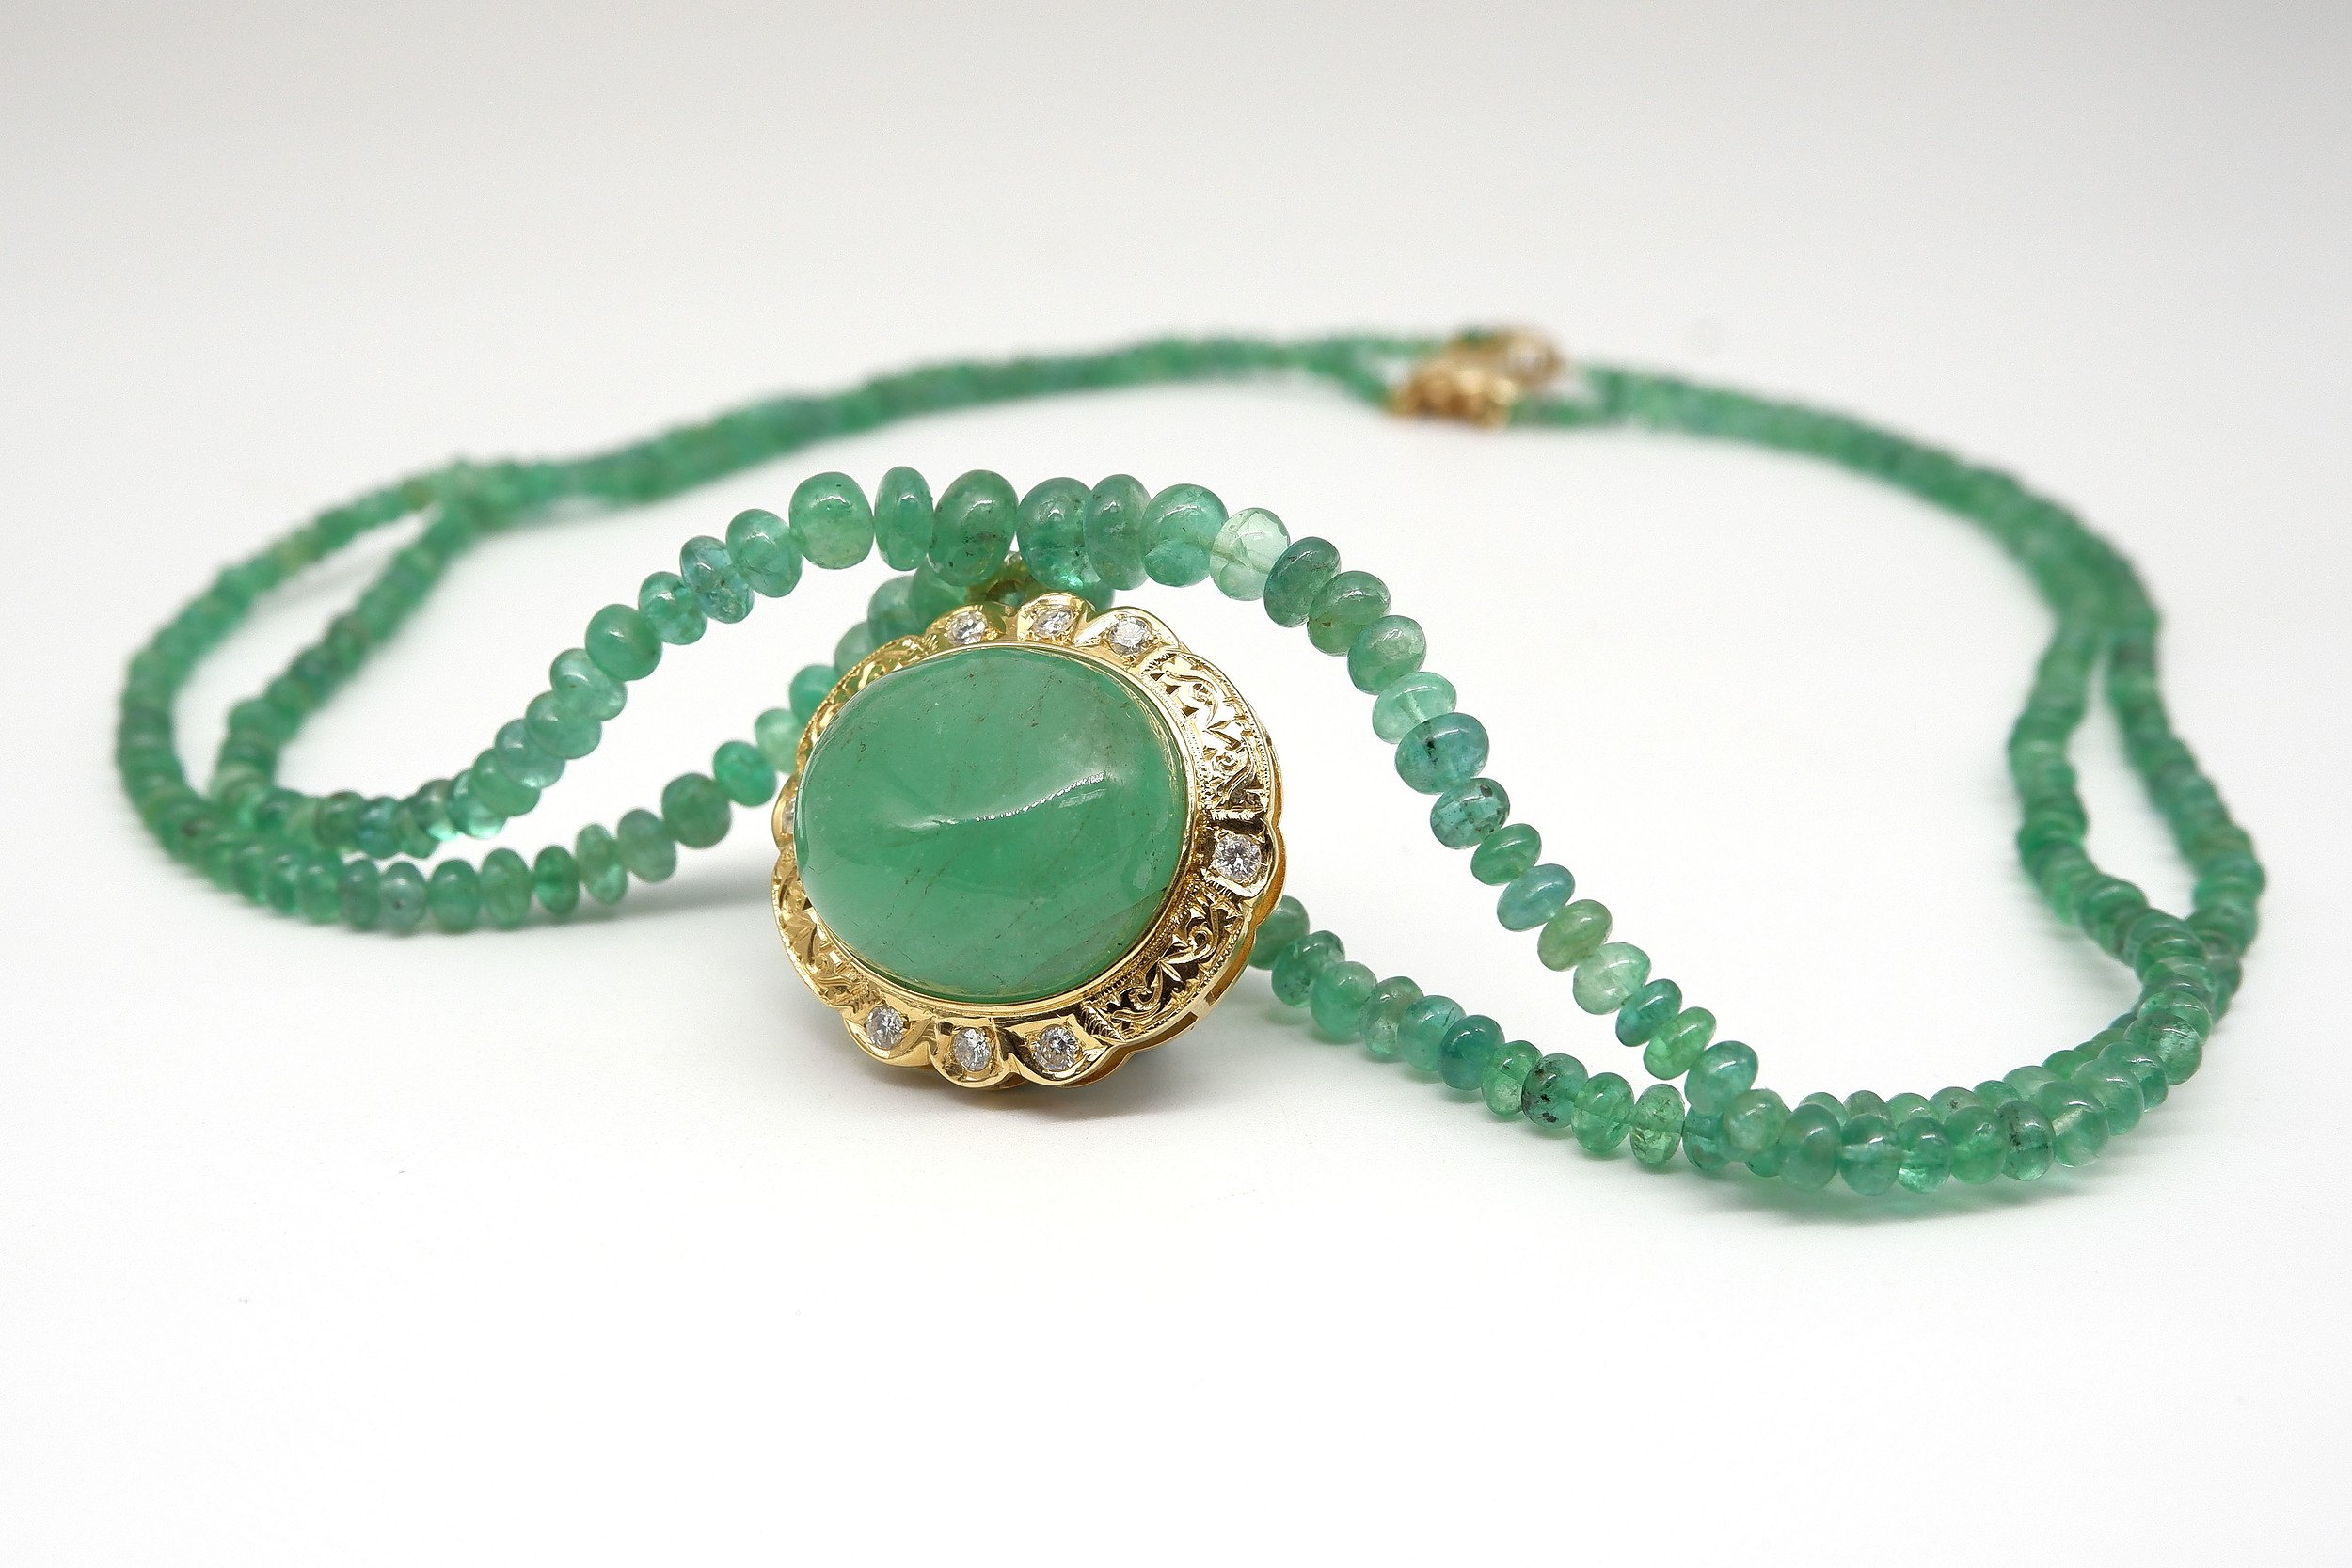 'Impressive Gold and Diamond Set 50ct Emerald Cabochon Pendant on an Emerald Beaded Necklace'